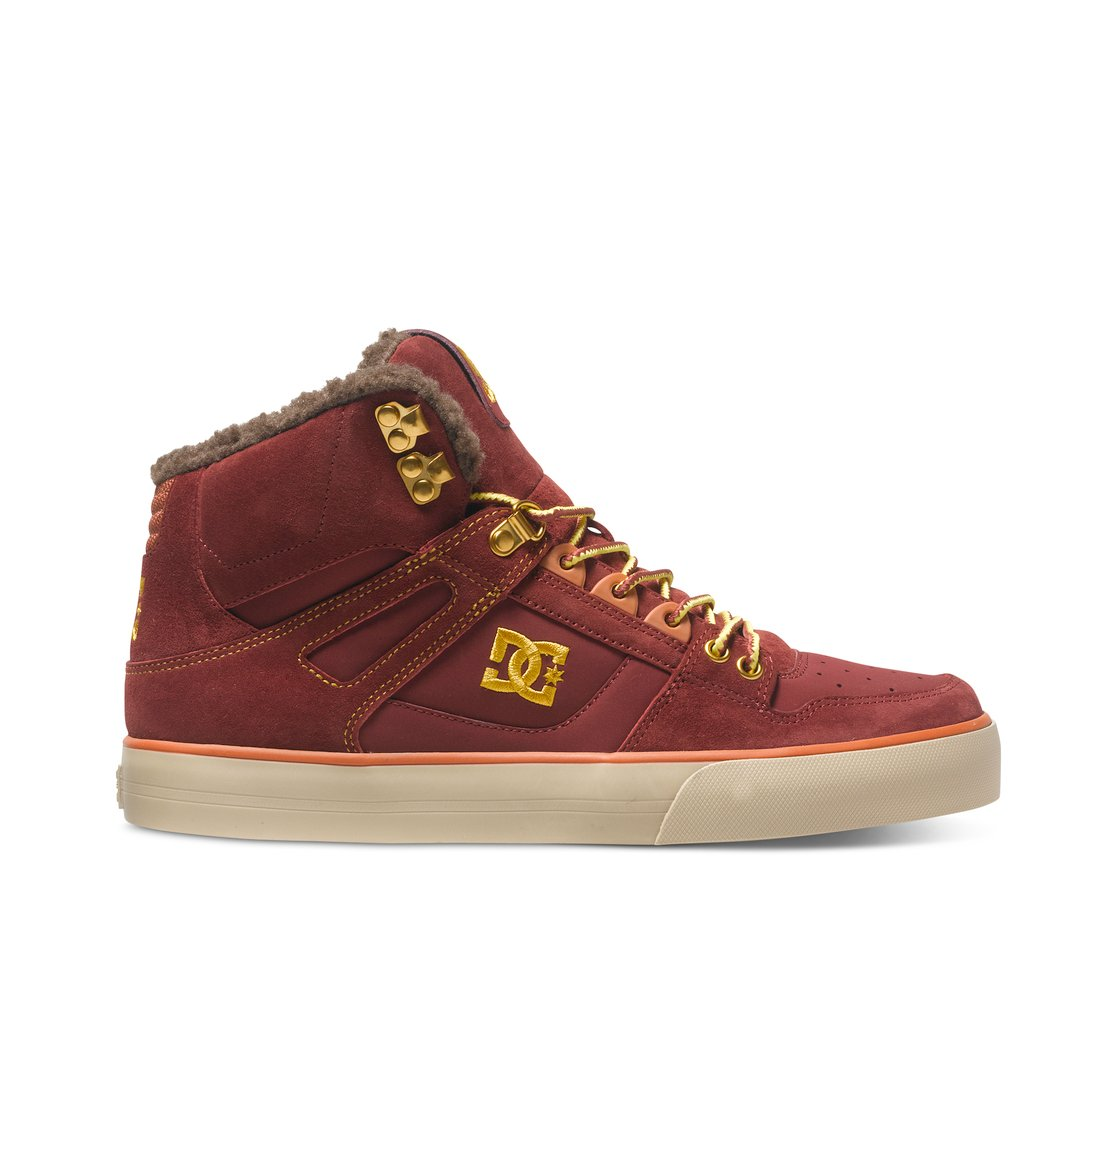 dc shoes spartan wc wnt chaussures montantes homme. Black Bedroom Furniture Sets. Home Design Ideas